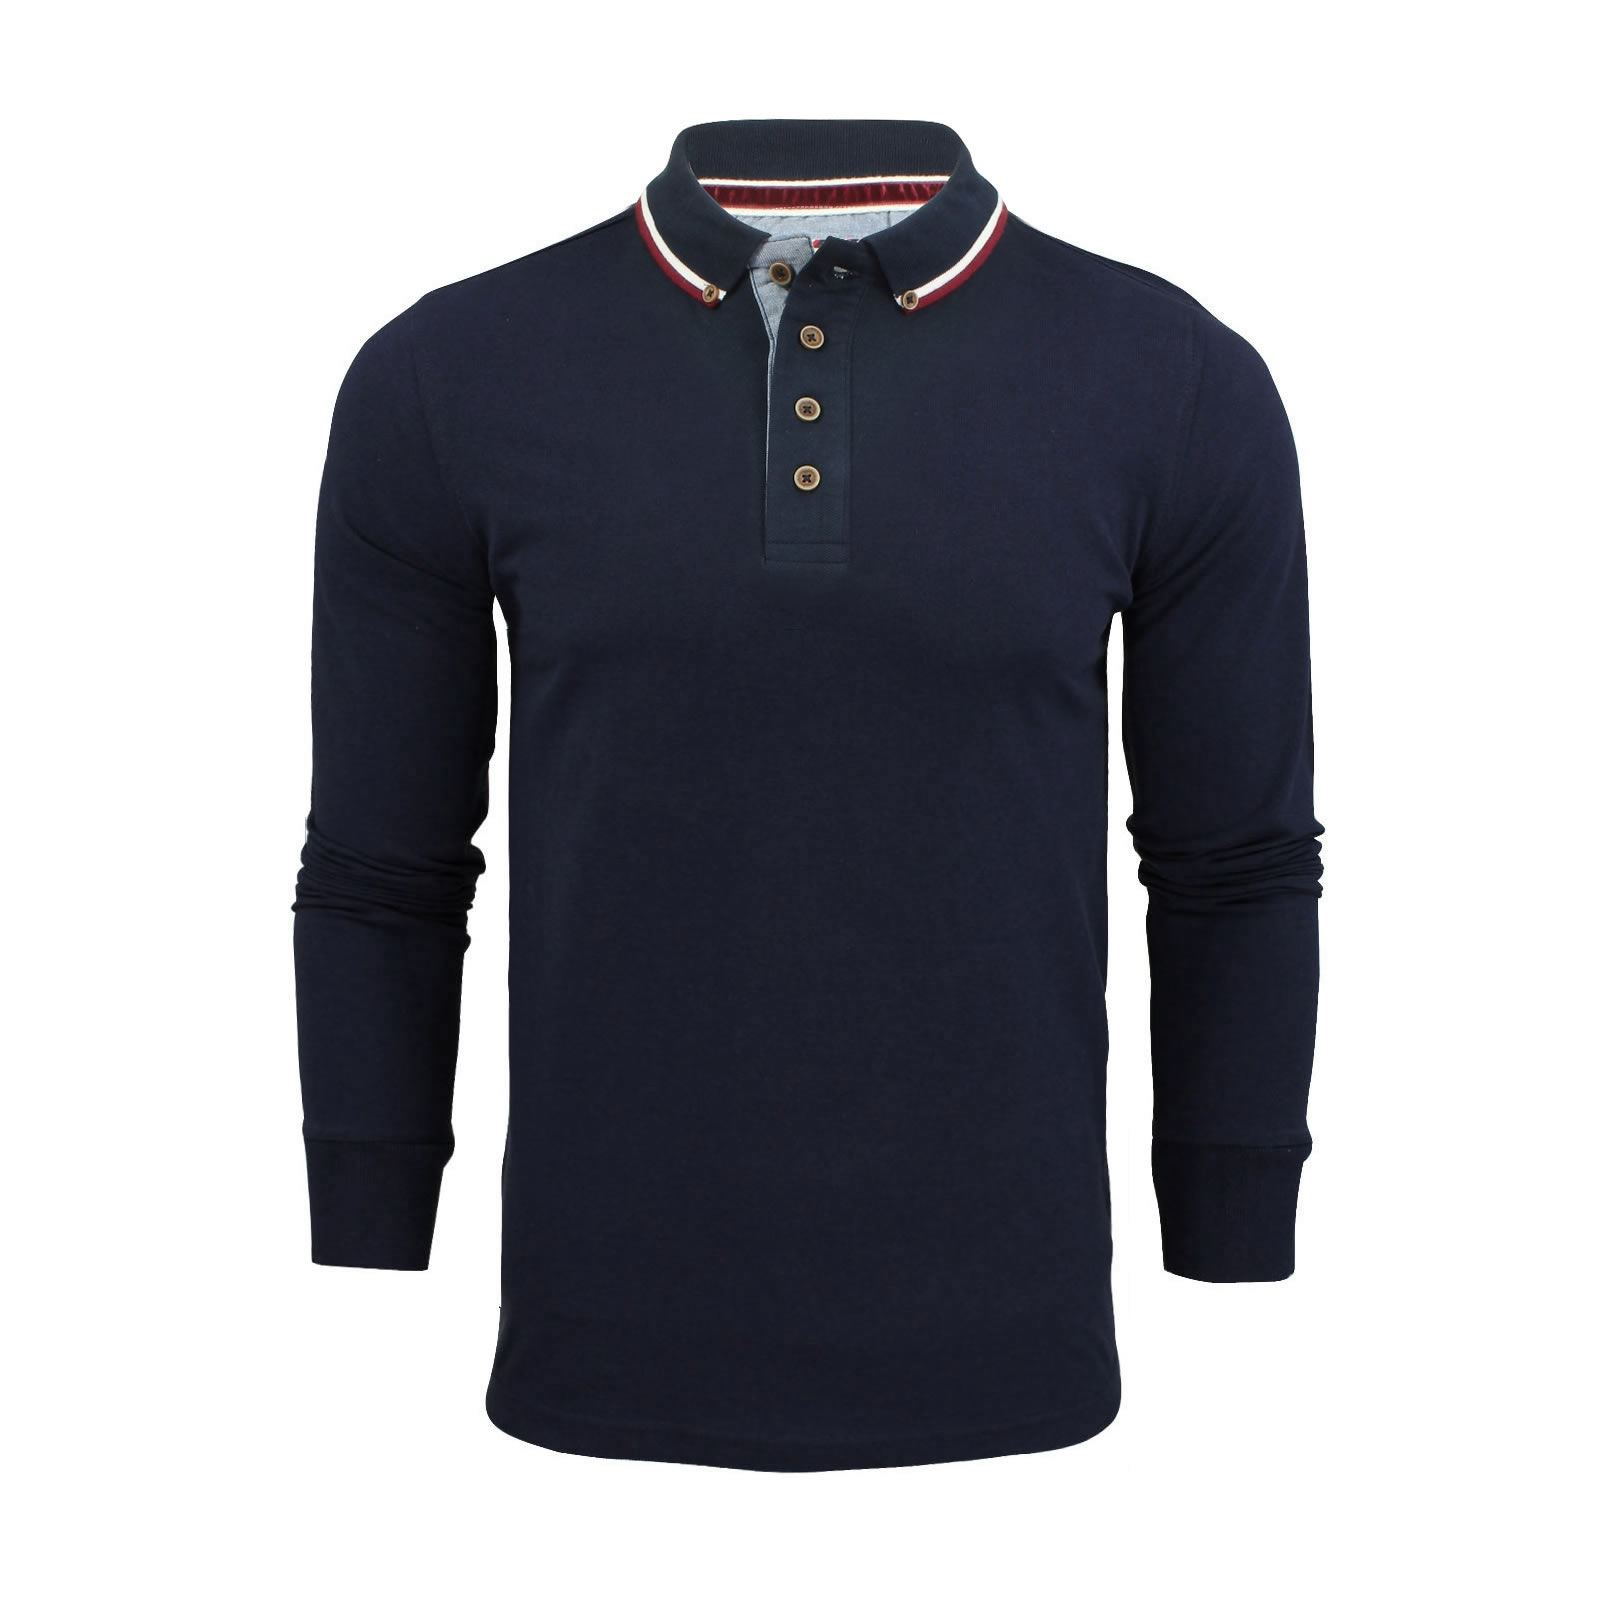 Brave-Soul-Lincoln-Mens-Polo-T-Shirt-Long-Sleeve-Cotton-Pique-Casual-Top thumbnail 2